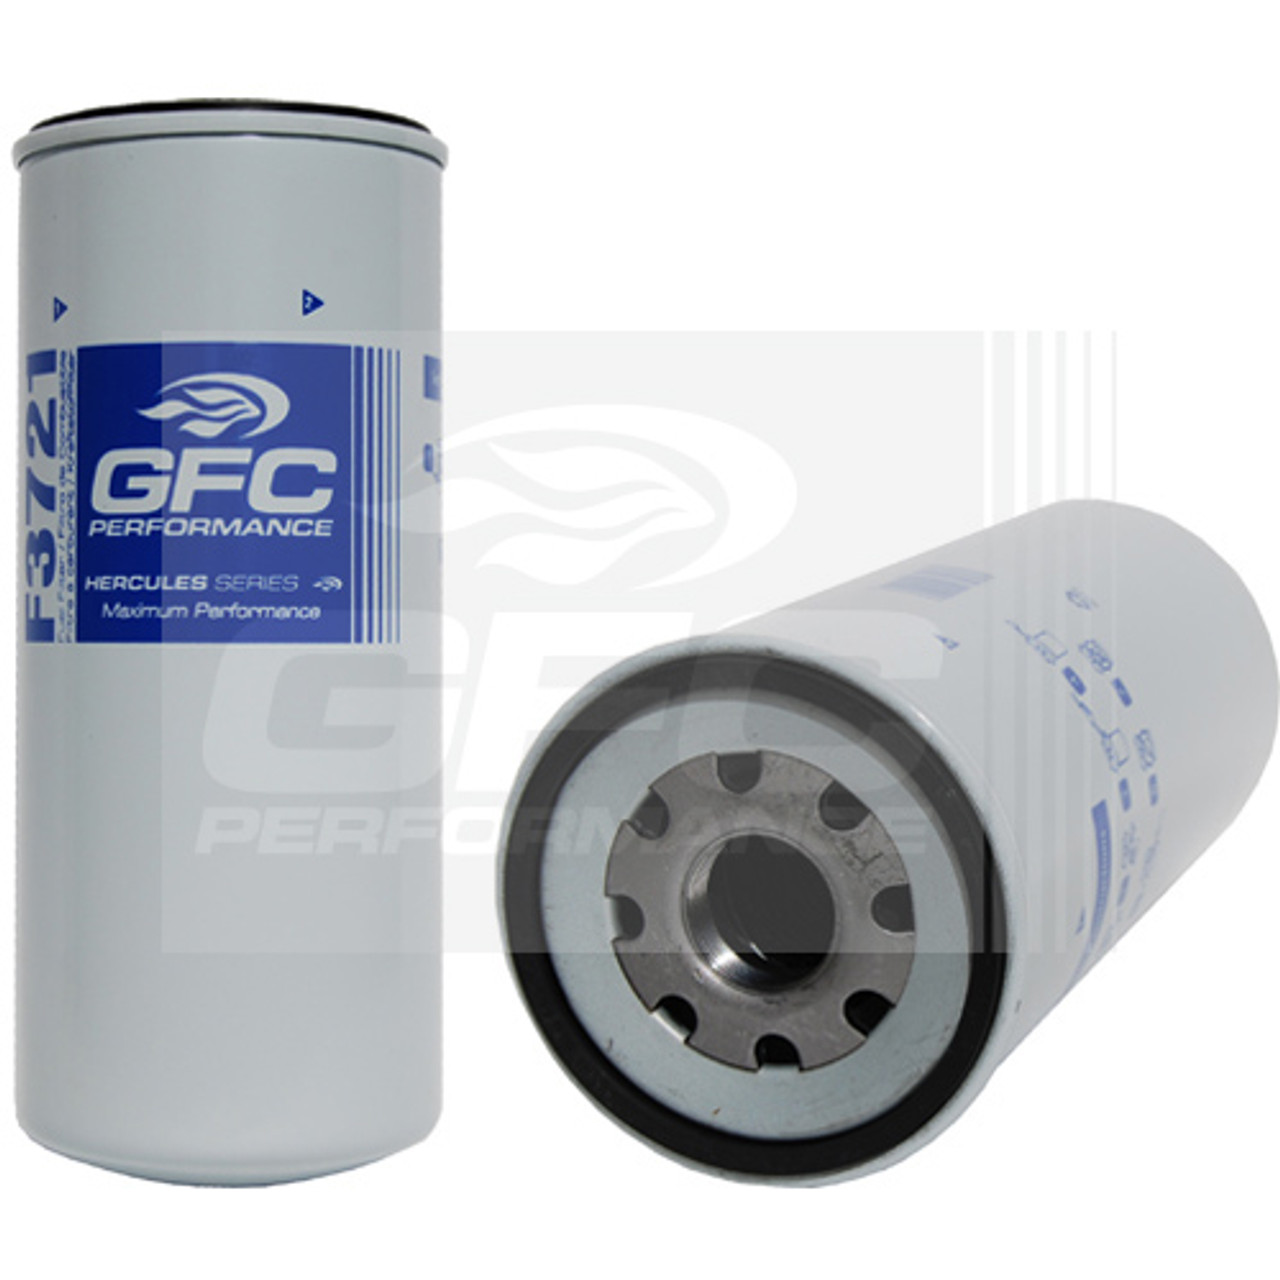 Case Of 1 F3721 Gfc Fuel Filter Mack And Volvo Trucks Bf46034 P550529 Ff5507 Wp7814 33721